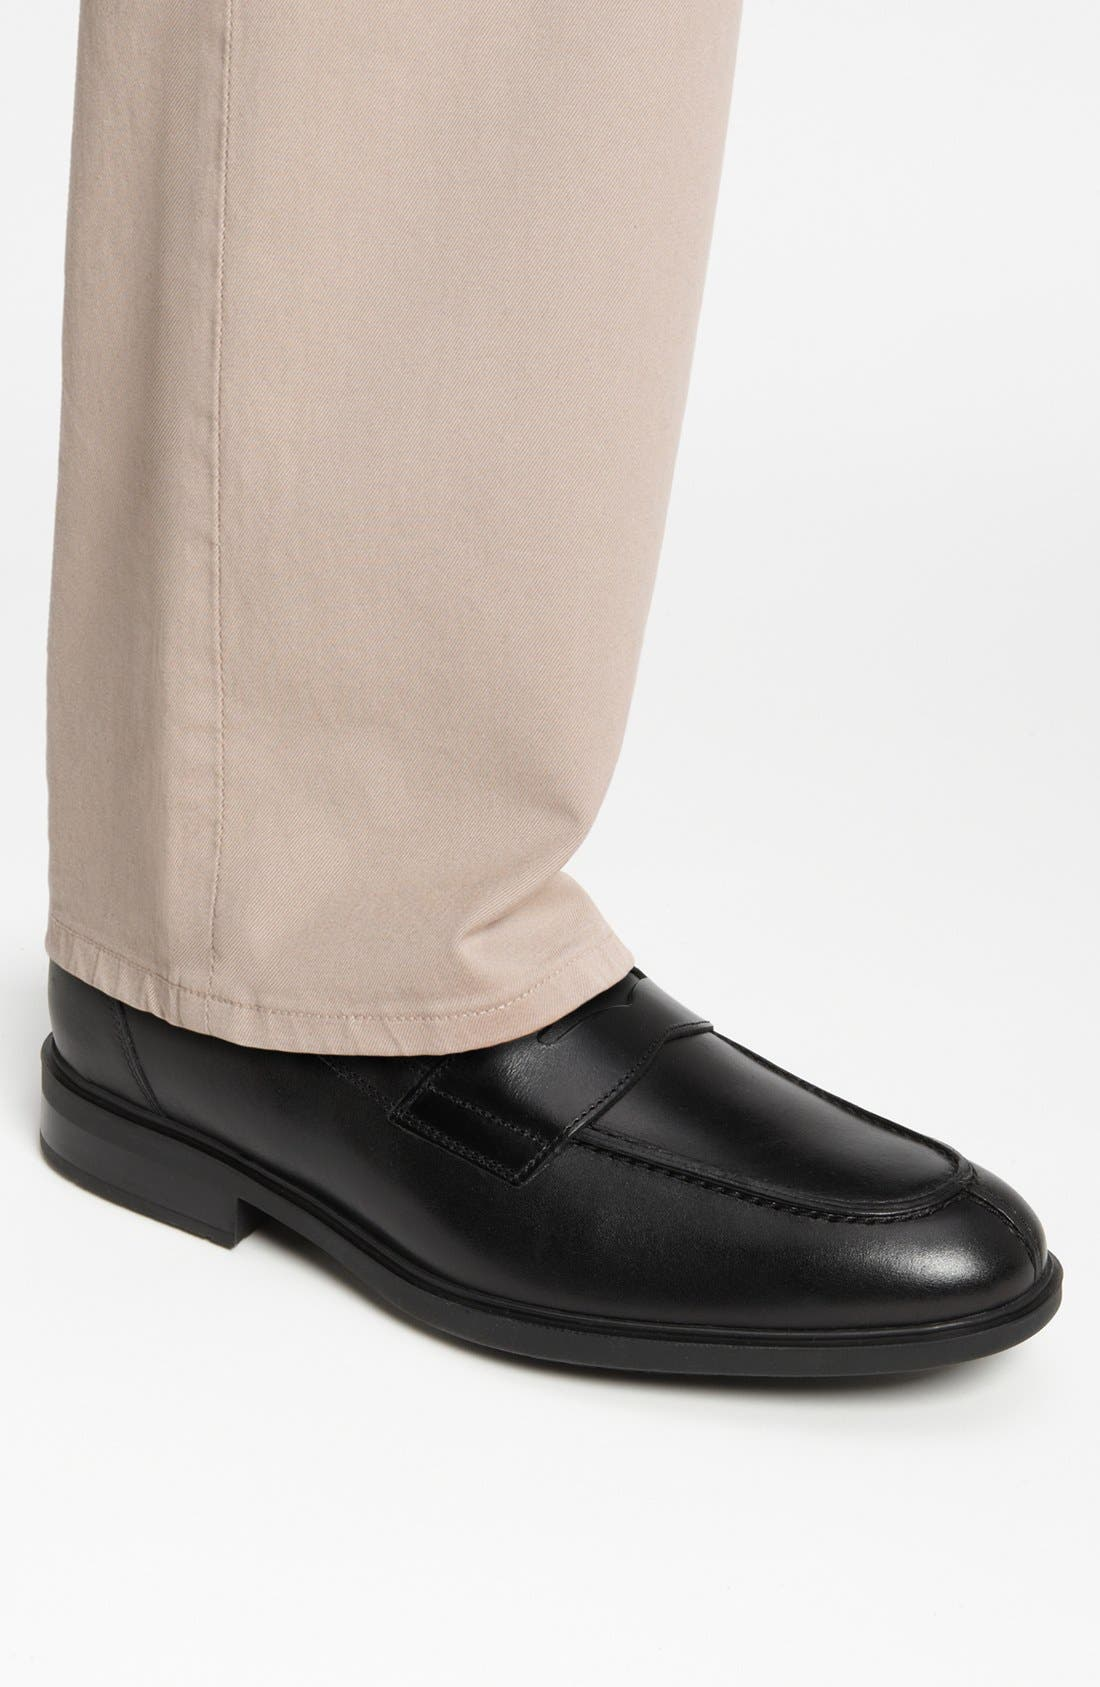 Fortino Loafer,                             Alternate thumbnail 9, color,                             001